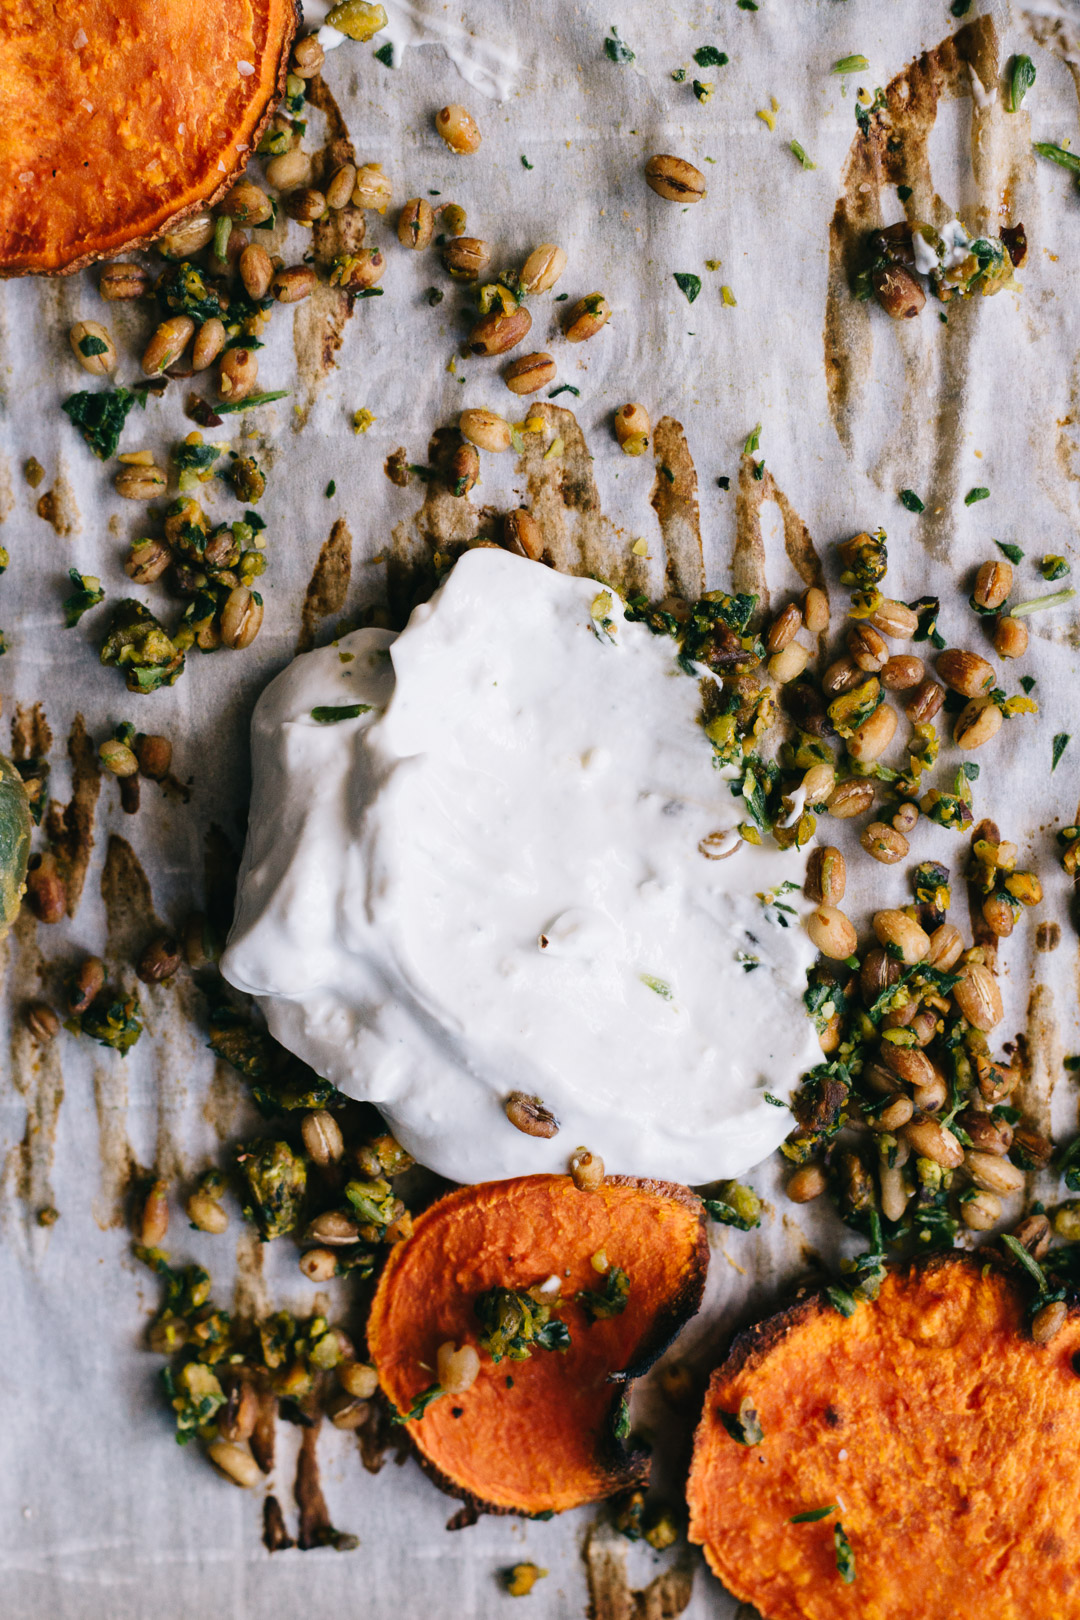 Close up overhead shot of a partial dollop of sour cream blue cheese dip surrounded by gremolata, barley, and sweet potato crisps.